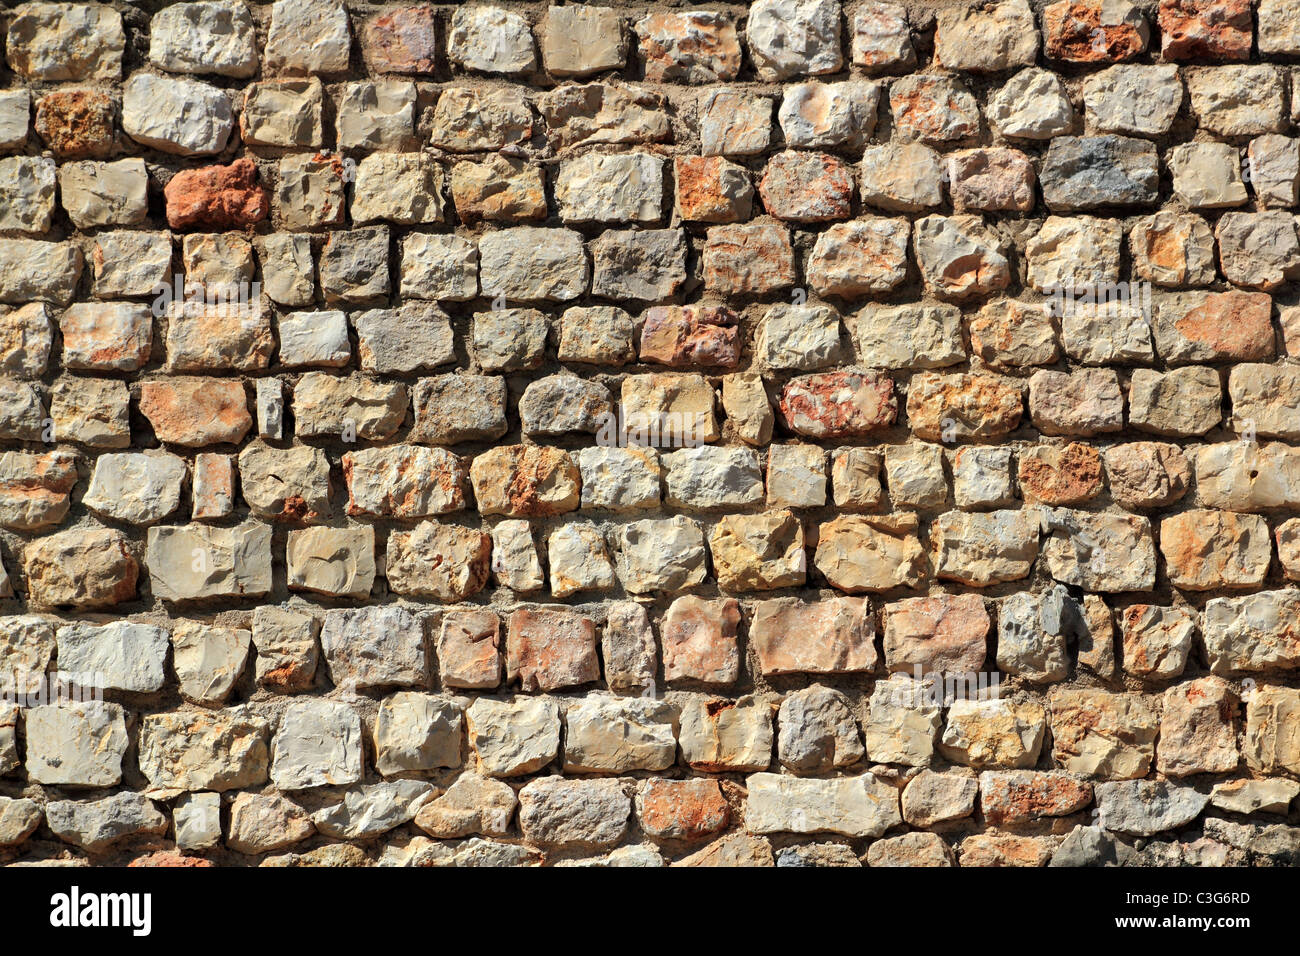 brown masonry stone wall Spain traditional ancient construction - Stock Image